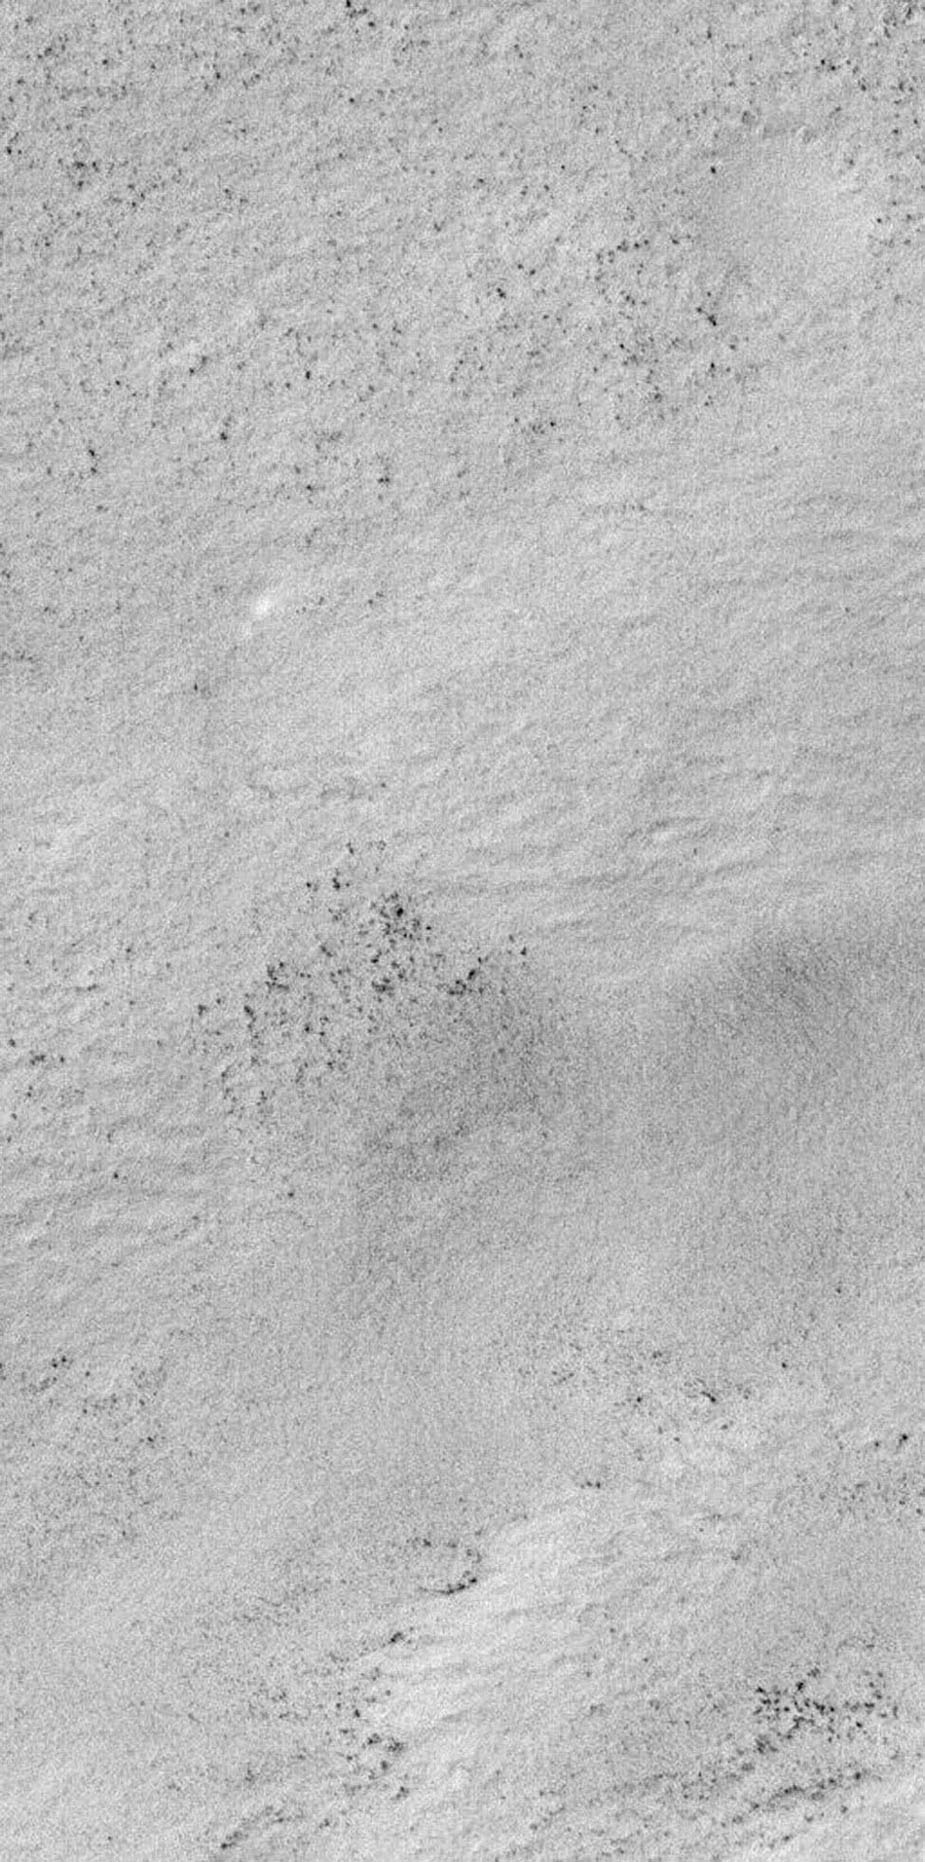 NASA's Mars Global Surveyor shows a snow-covered surface located on Malea Planum, south of the giant Hellas impact basin on Mars.